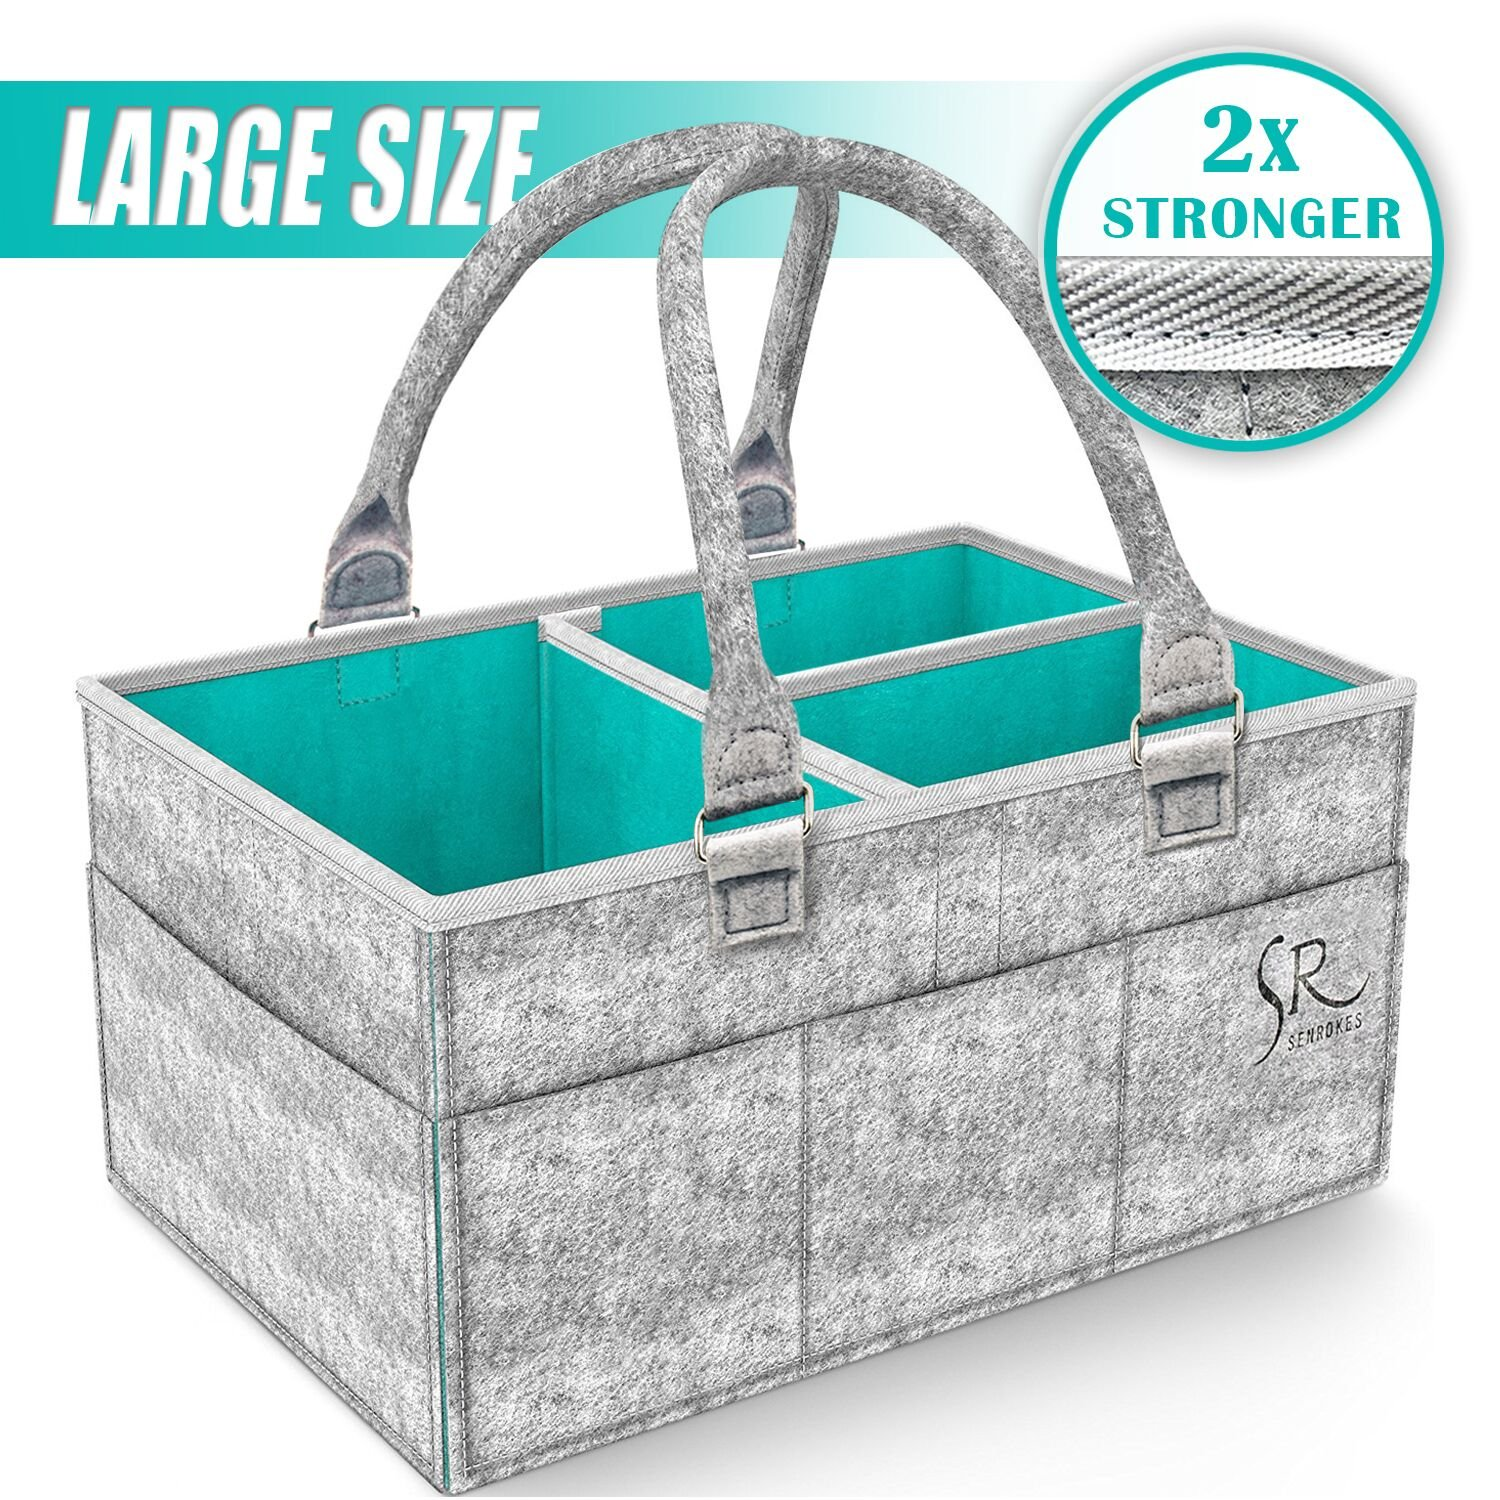 Baby Diaper Caddy Organiser - Rokkes Nursery Storage Portable Diaper Caddy Organaizer Baby Shower Gift Baskets with Changeable Insert for Baby Diapers, Wipes and Toys to Household, Car and Travel.(Grey)